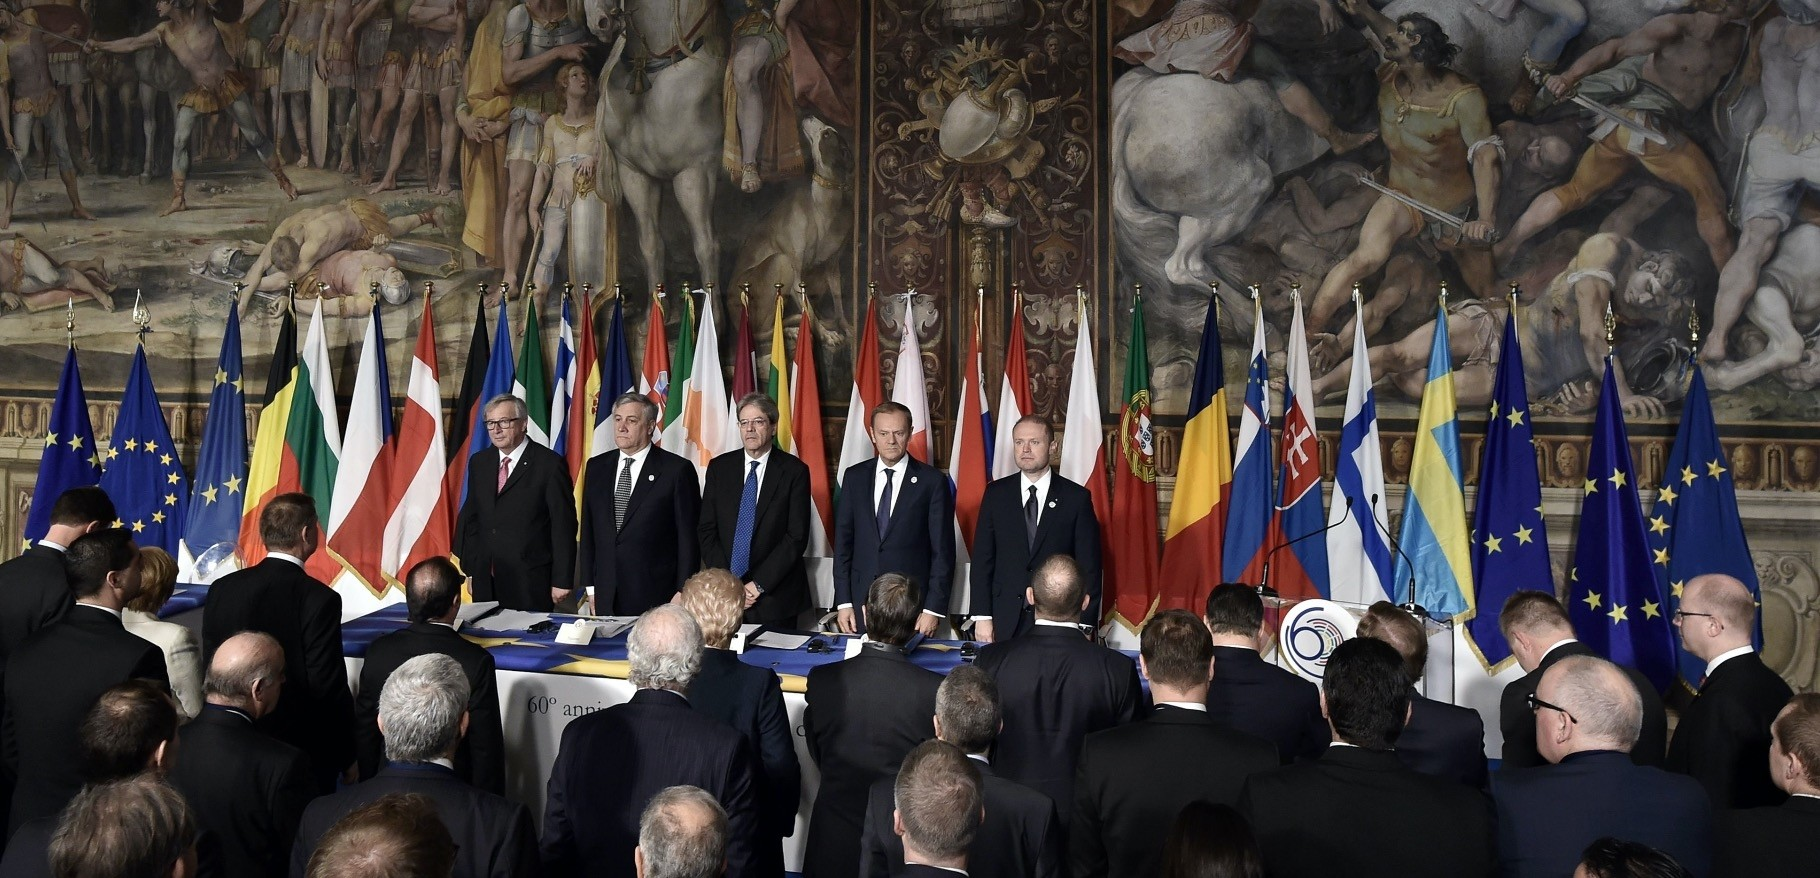 From left to right, European Commission President Juncker, the EP President, Italian PM Gentiloni, EC President Tusk and Malta's PM Muscat standing prior to the signing of the new Rome declaration with leaders of 27 European Union countries